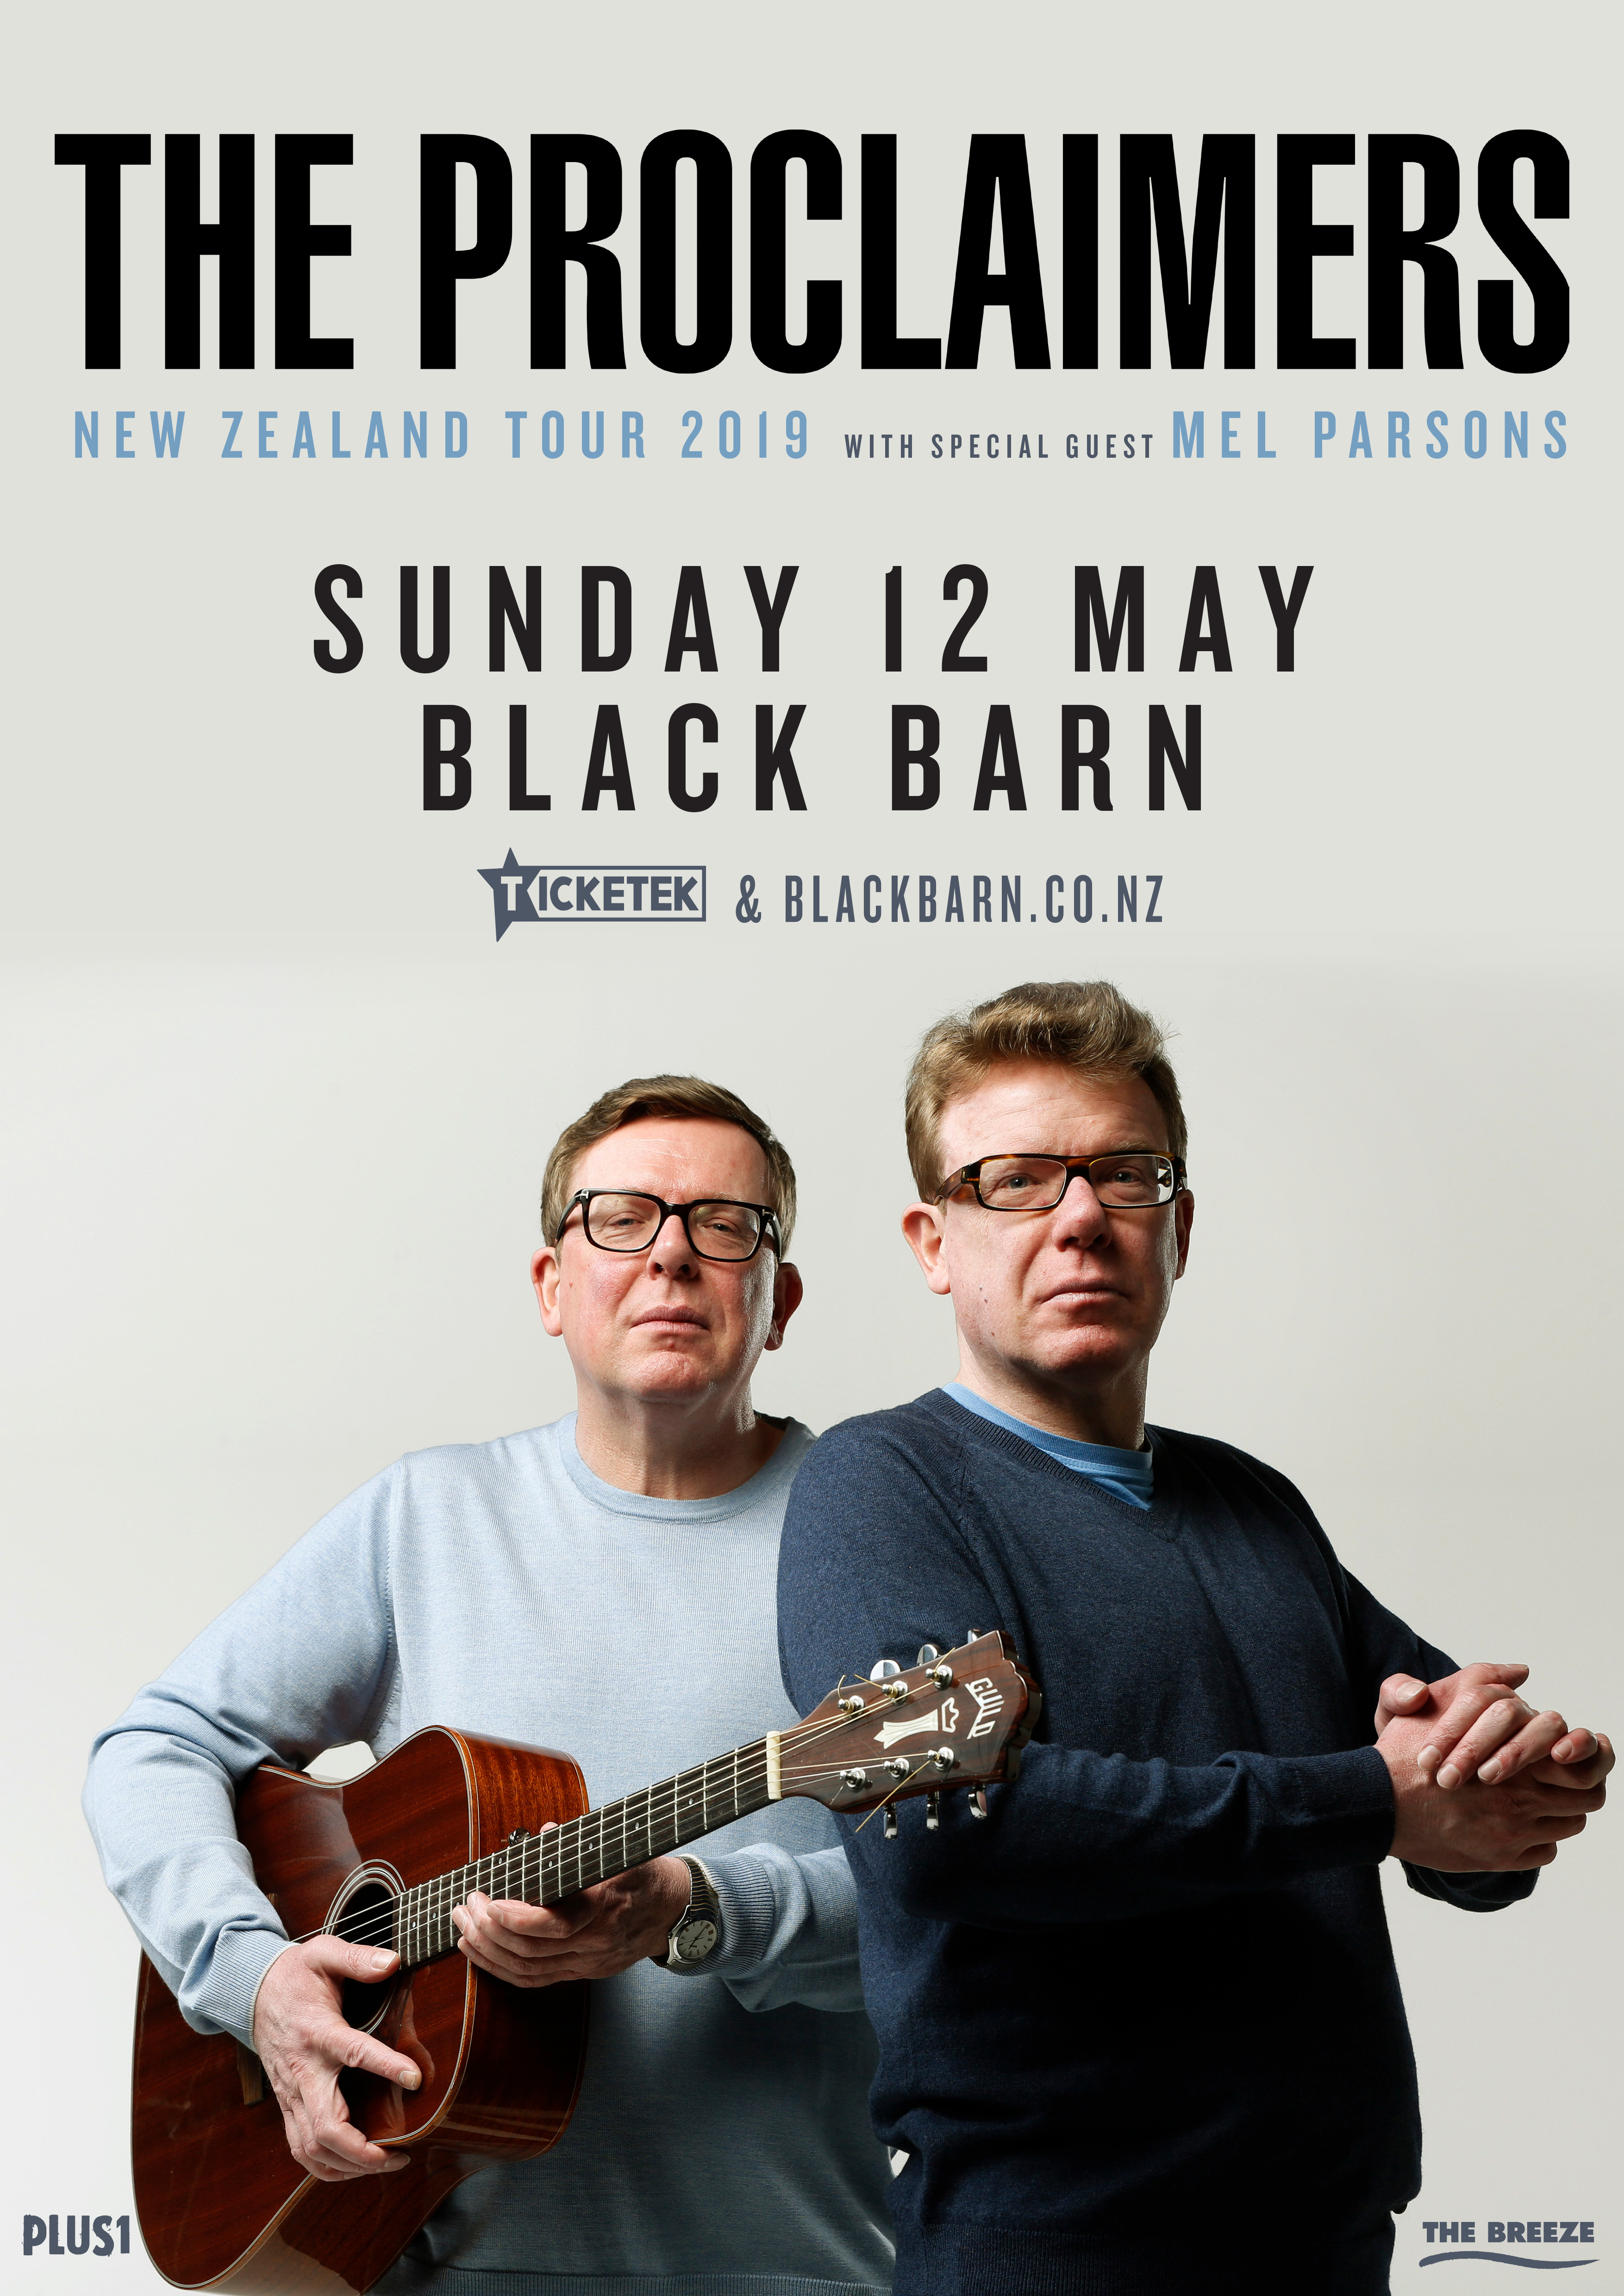 The Proclaimers at Black Barn Amphitheatre | 12 May 2019